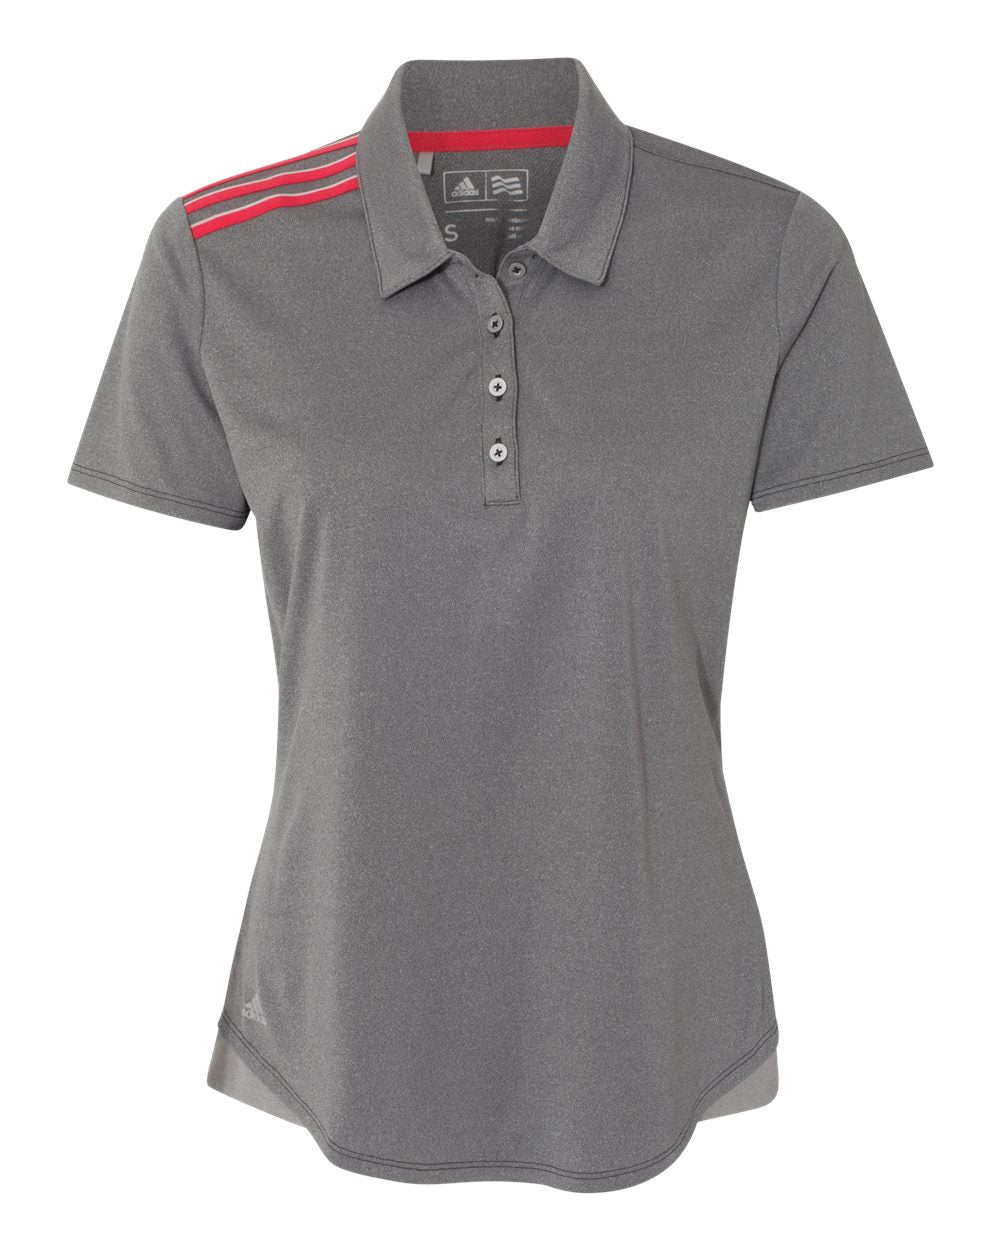 Women's Climacool 3-Stripes Shoulder Sport Shirt